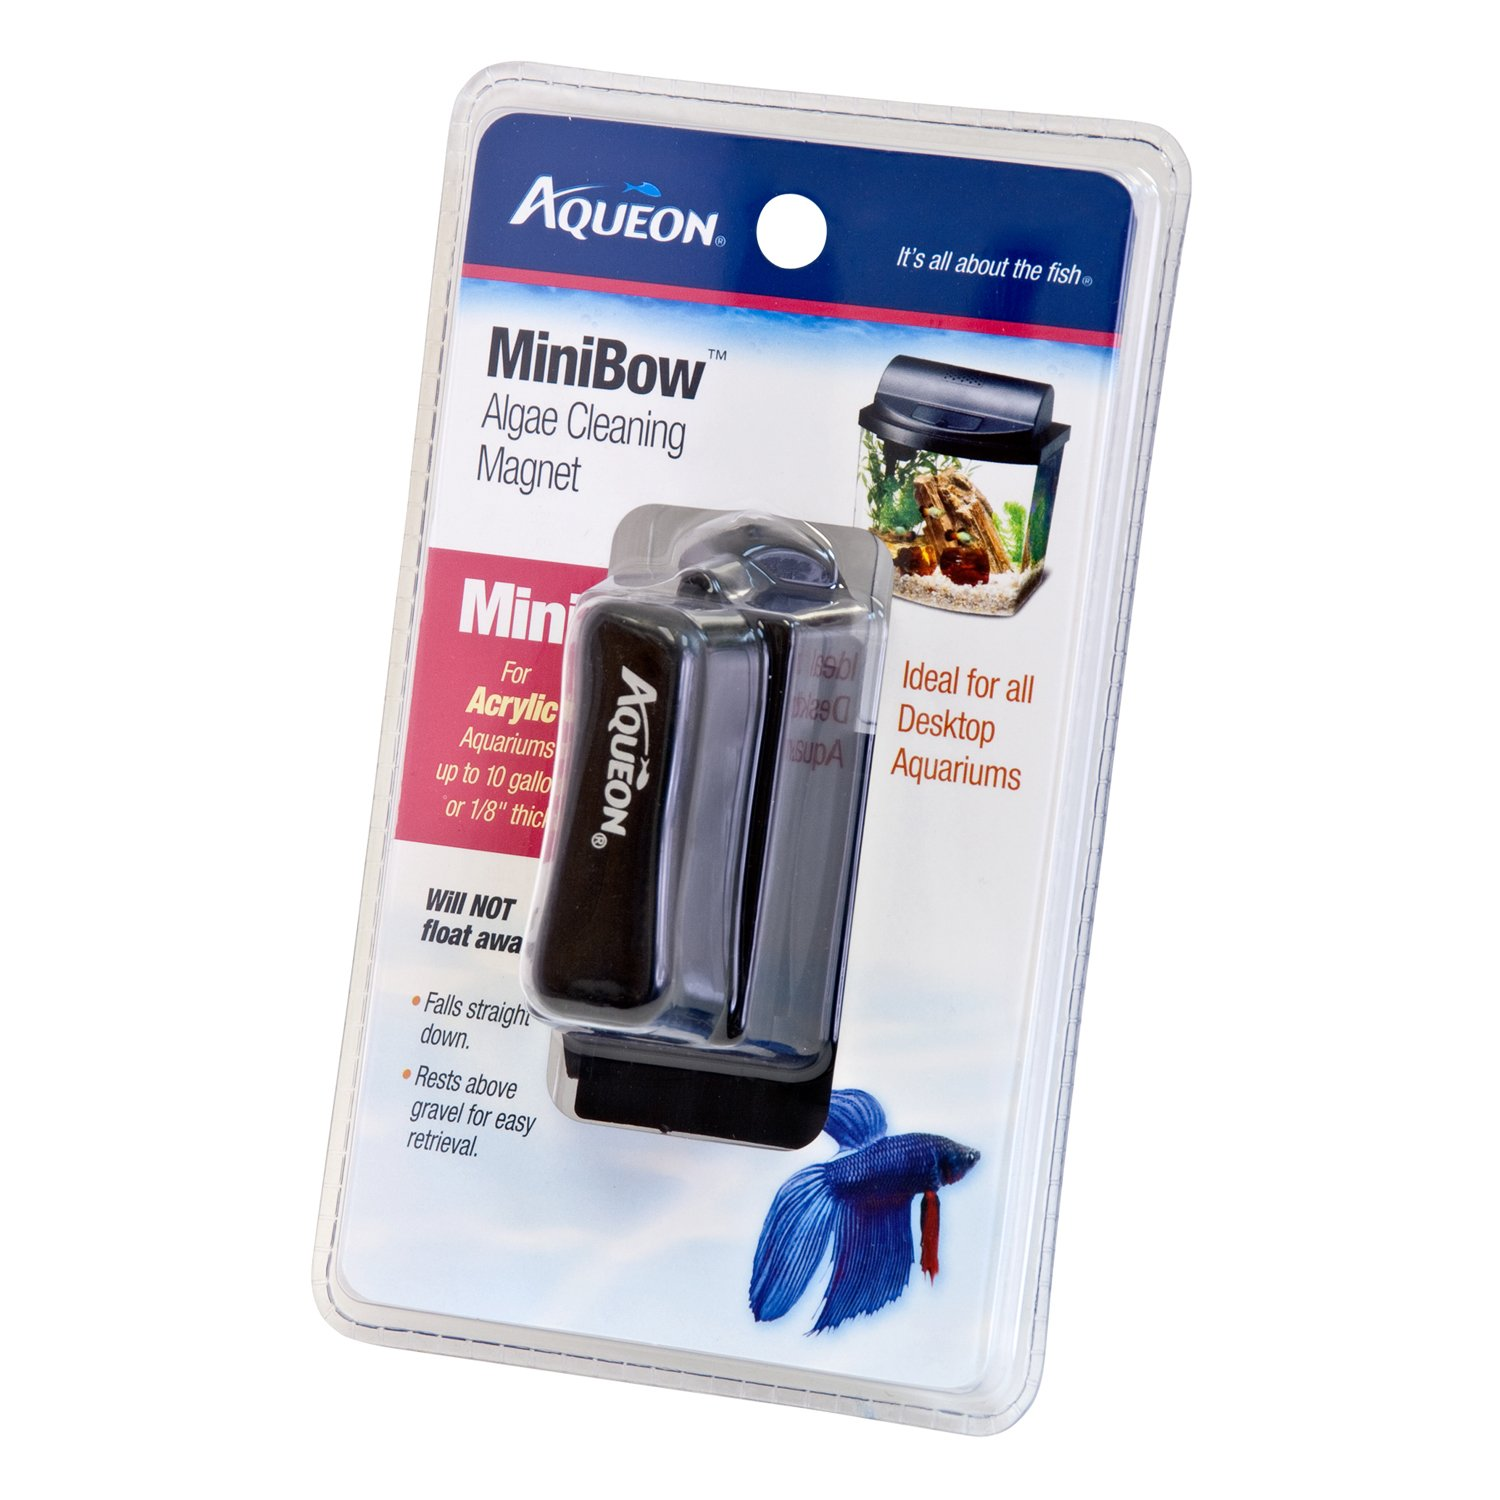 Aqueon Mini Bow Algae Cleaning Aquarium Magnet  8e1a17ad8a34